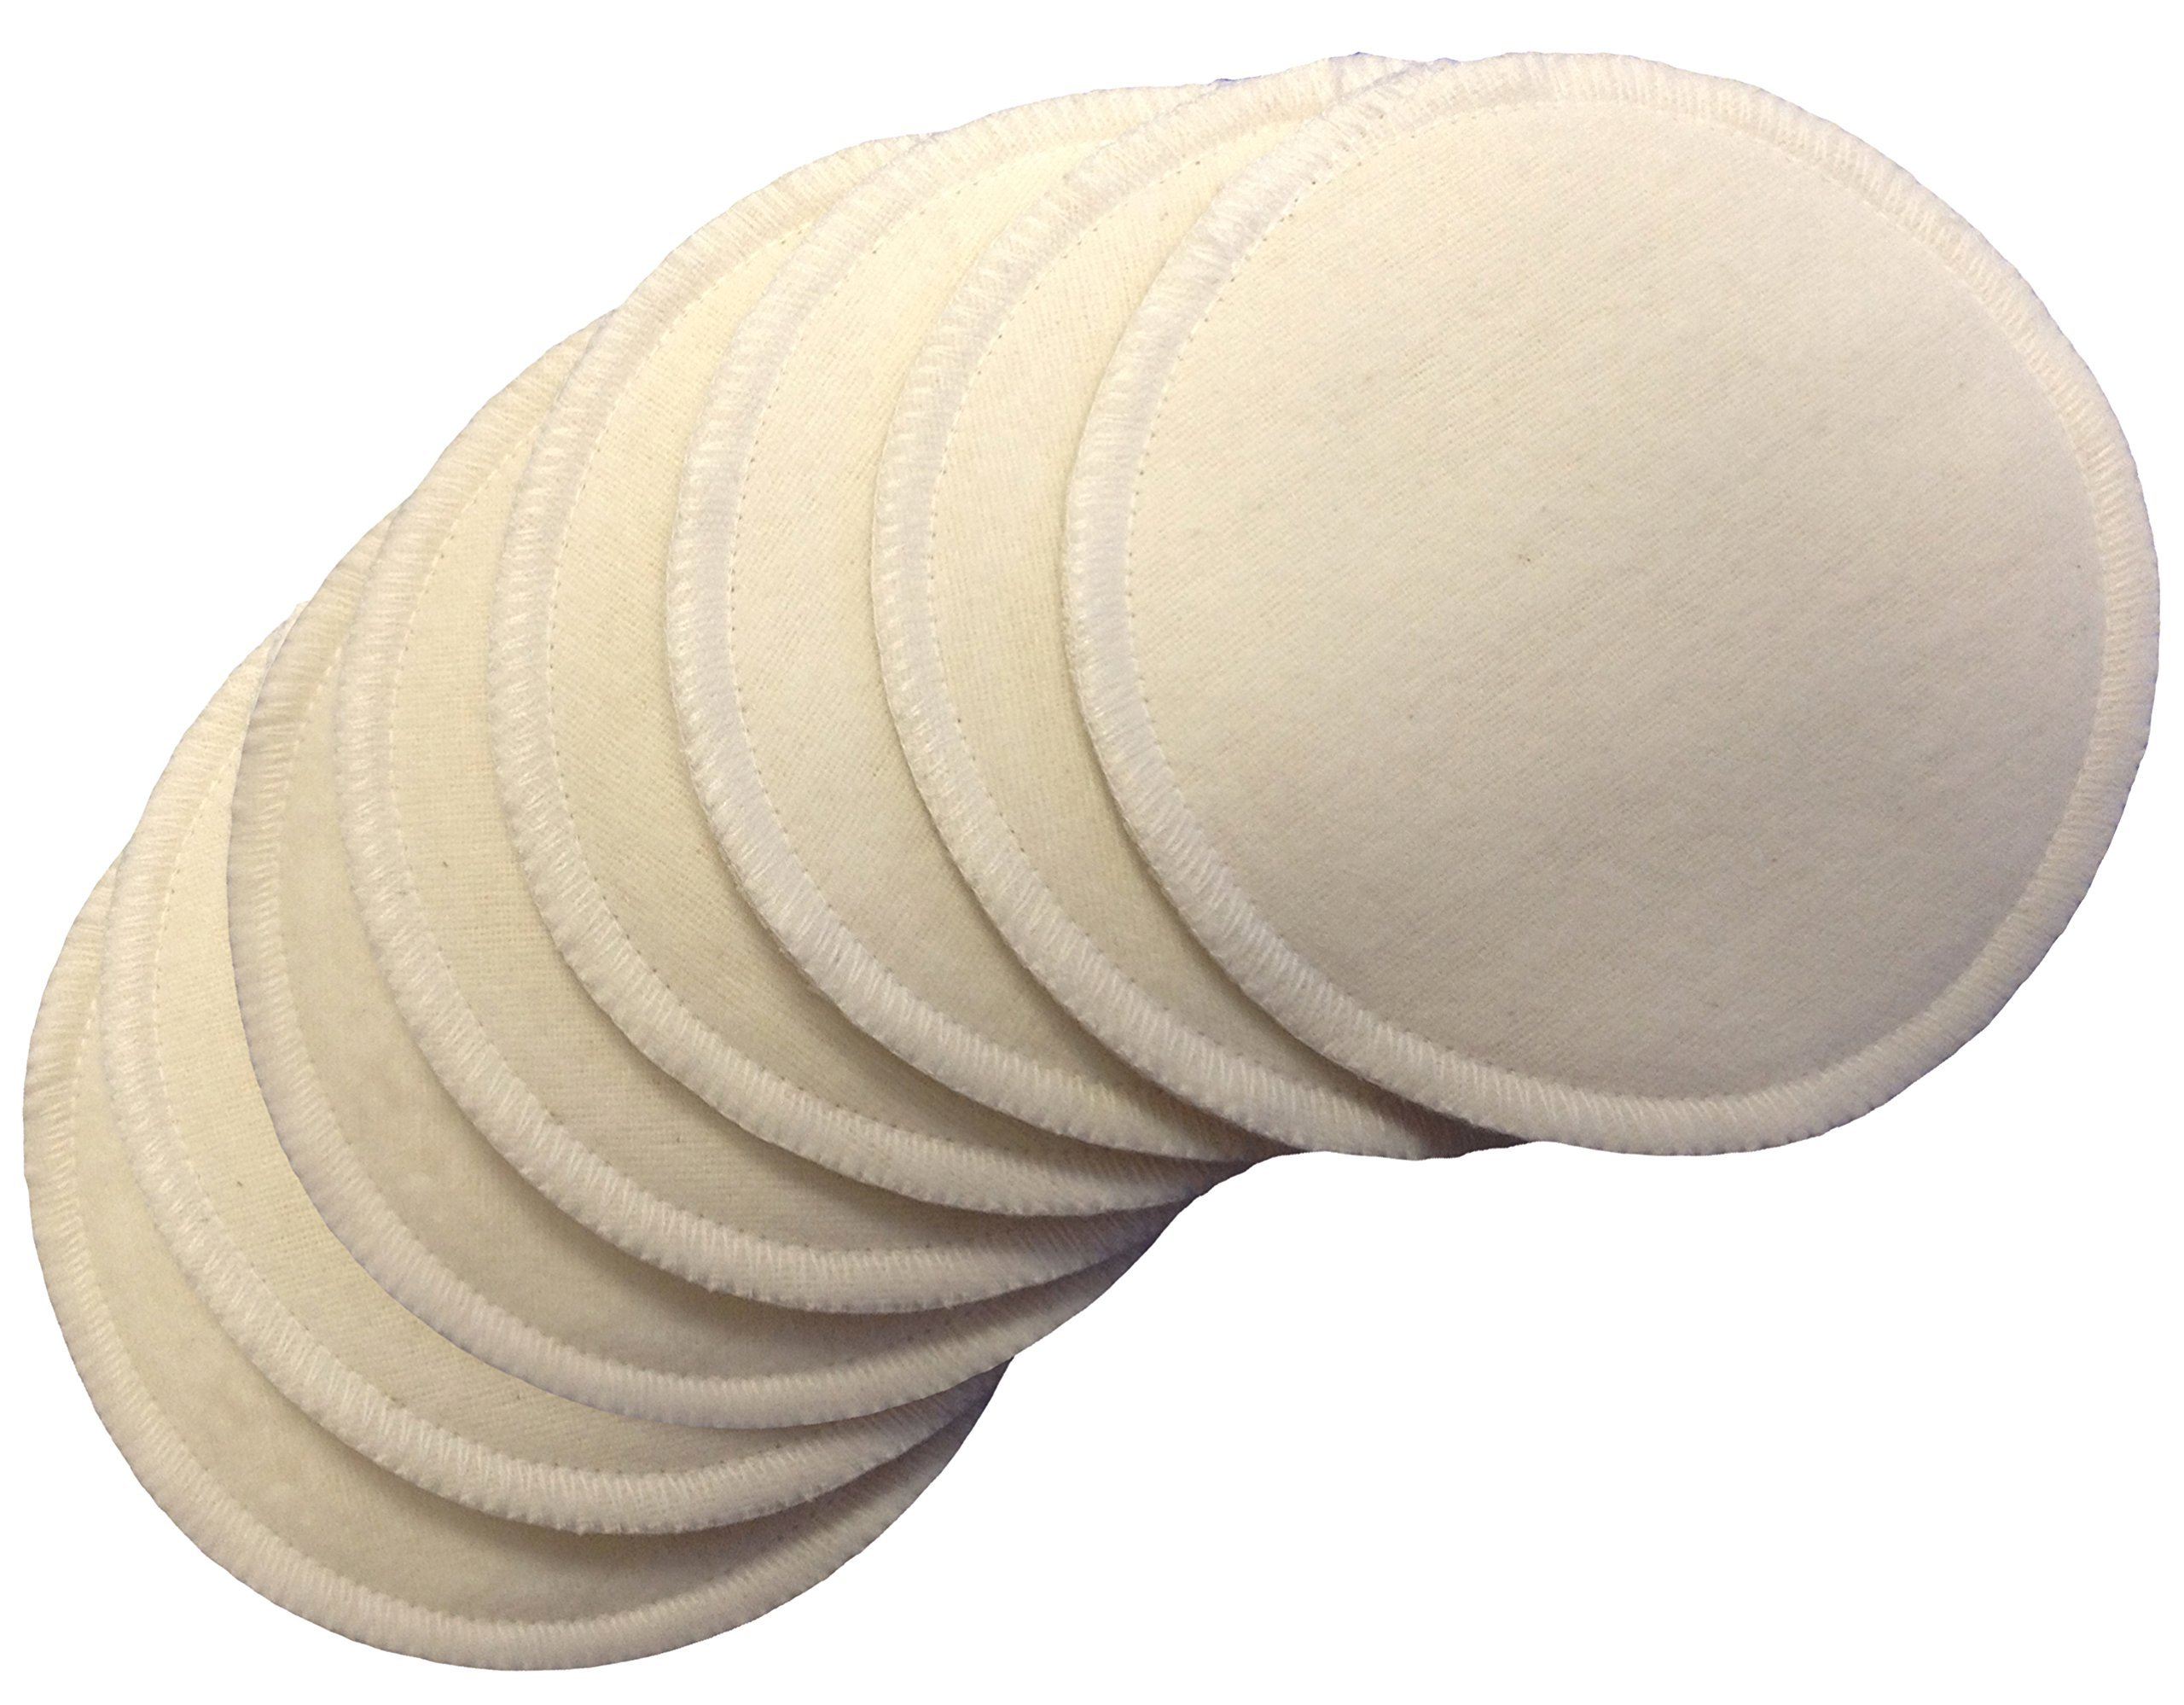 Click here to buy NuAngel Natural Cotton Washable Nursing Pads (8 Pads per Package) by NuAngel.